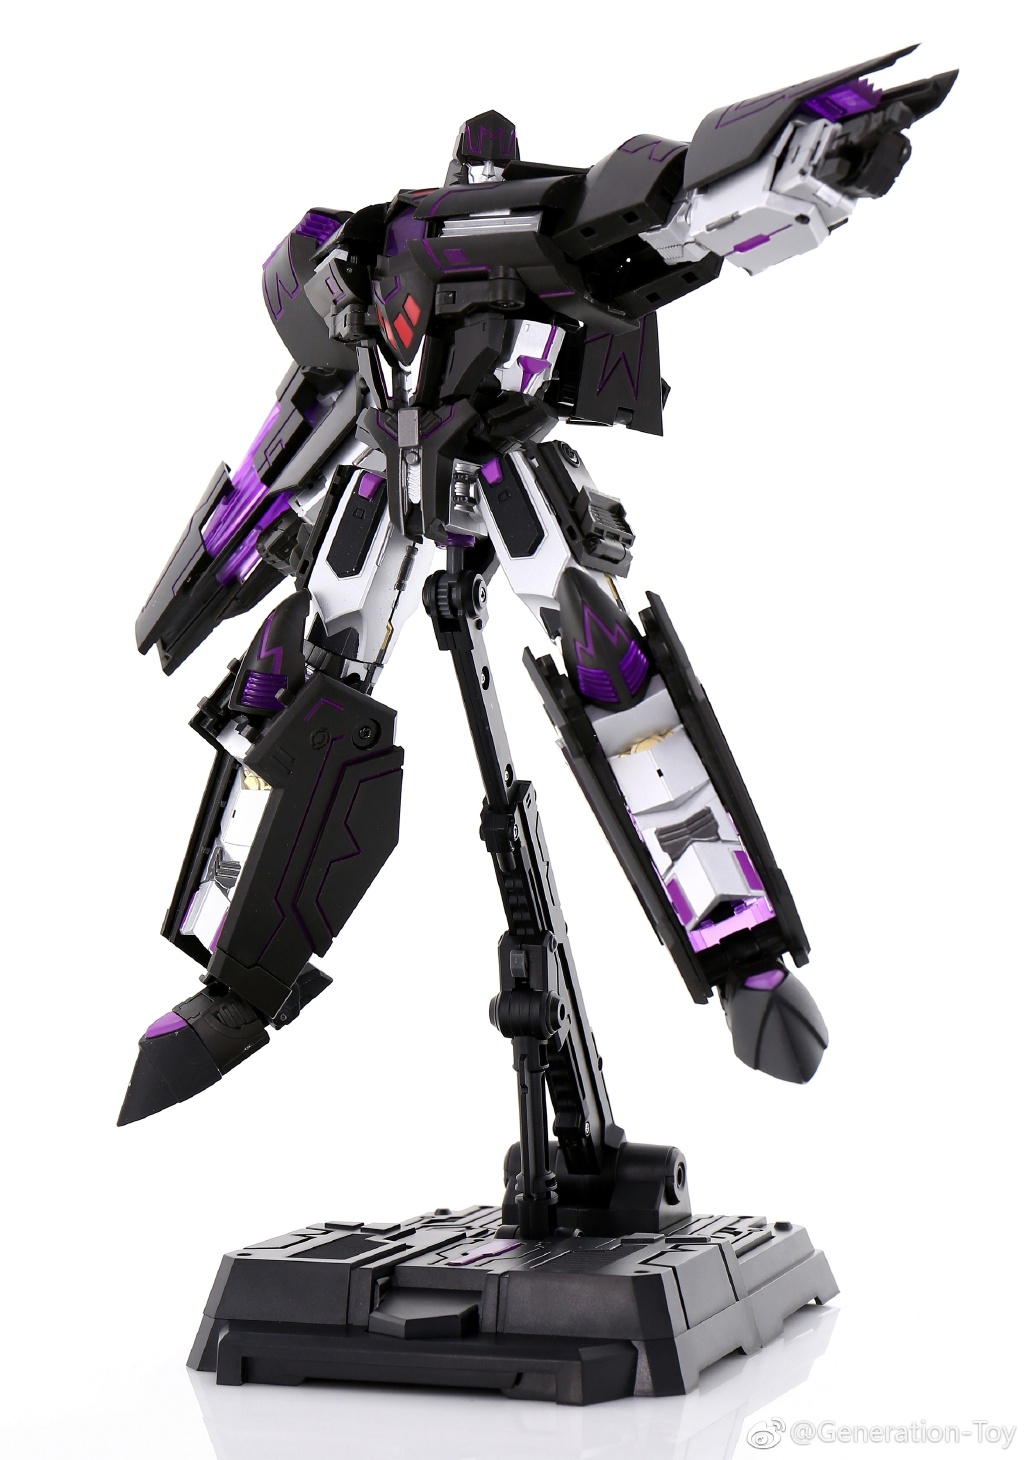 Generation Toy GT-2 RE TYRANT